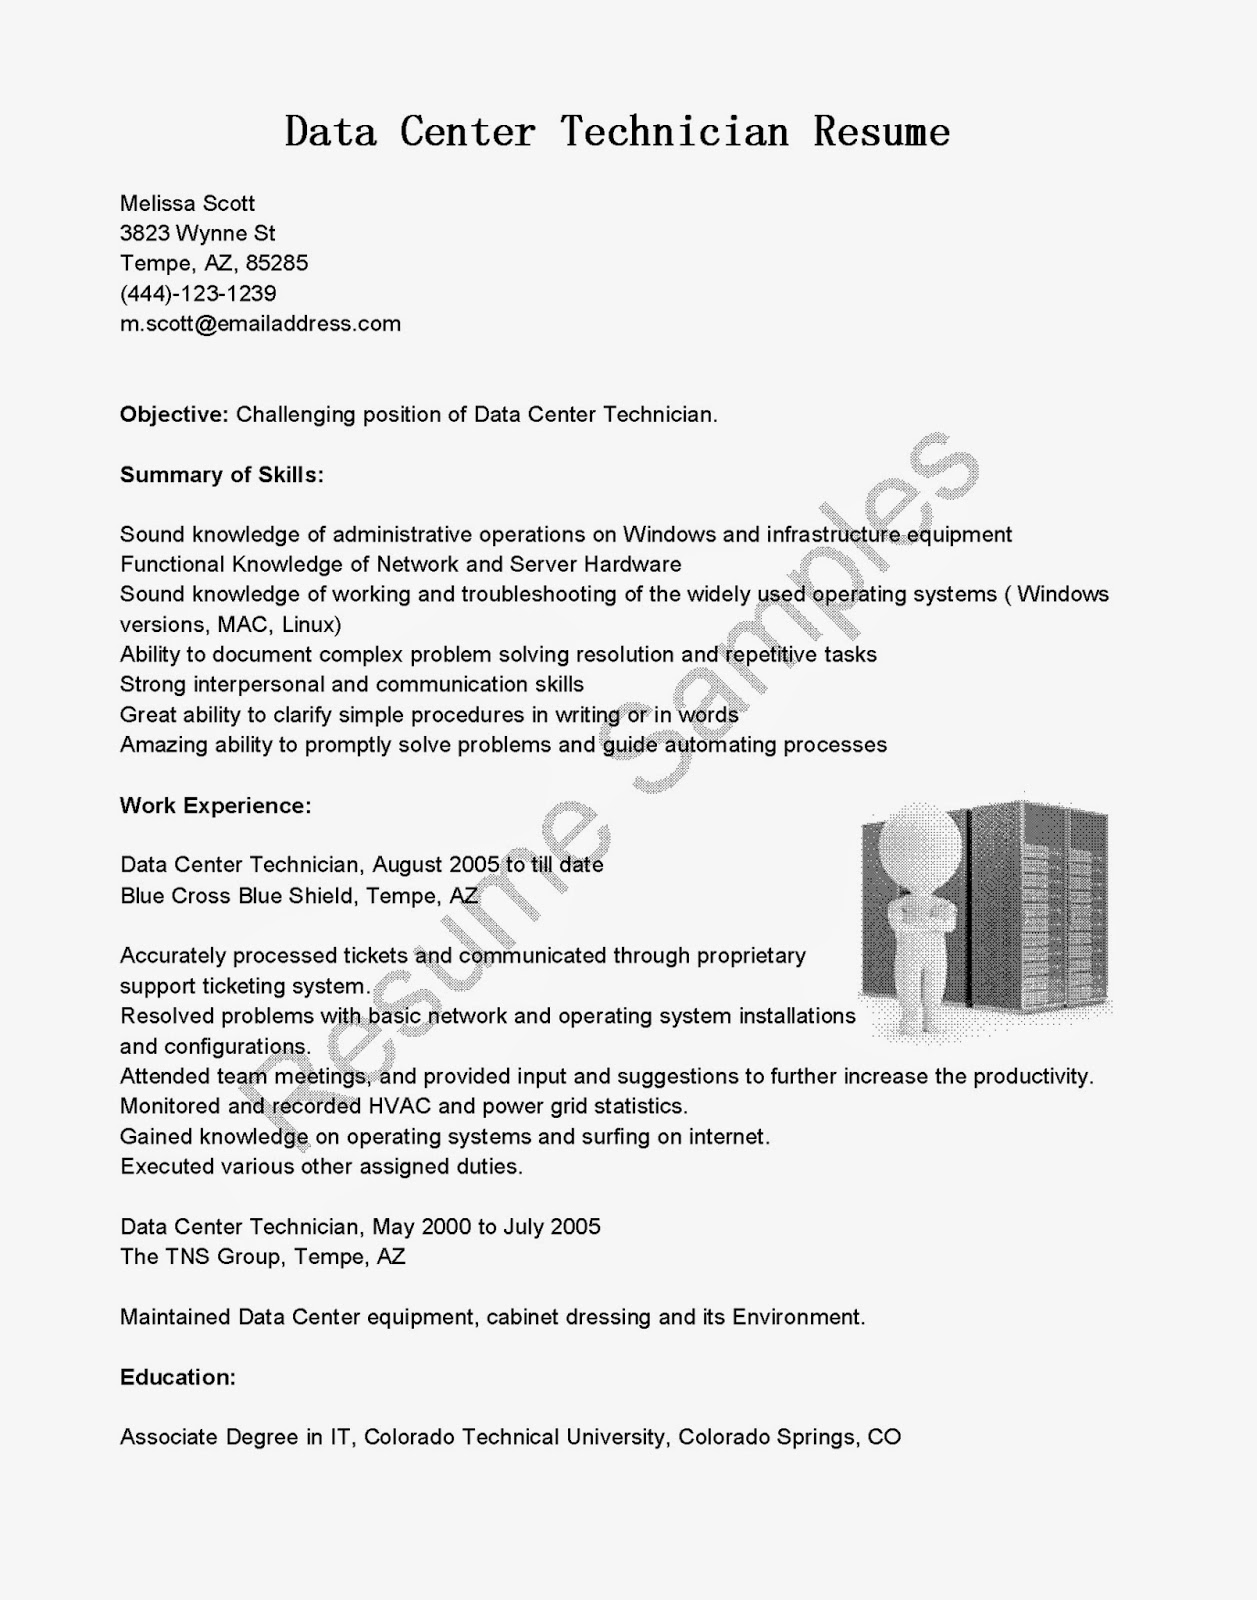 resume samples  data center technician resume sample